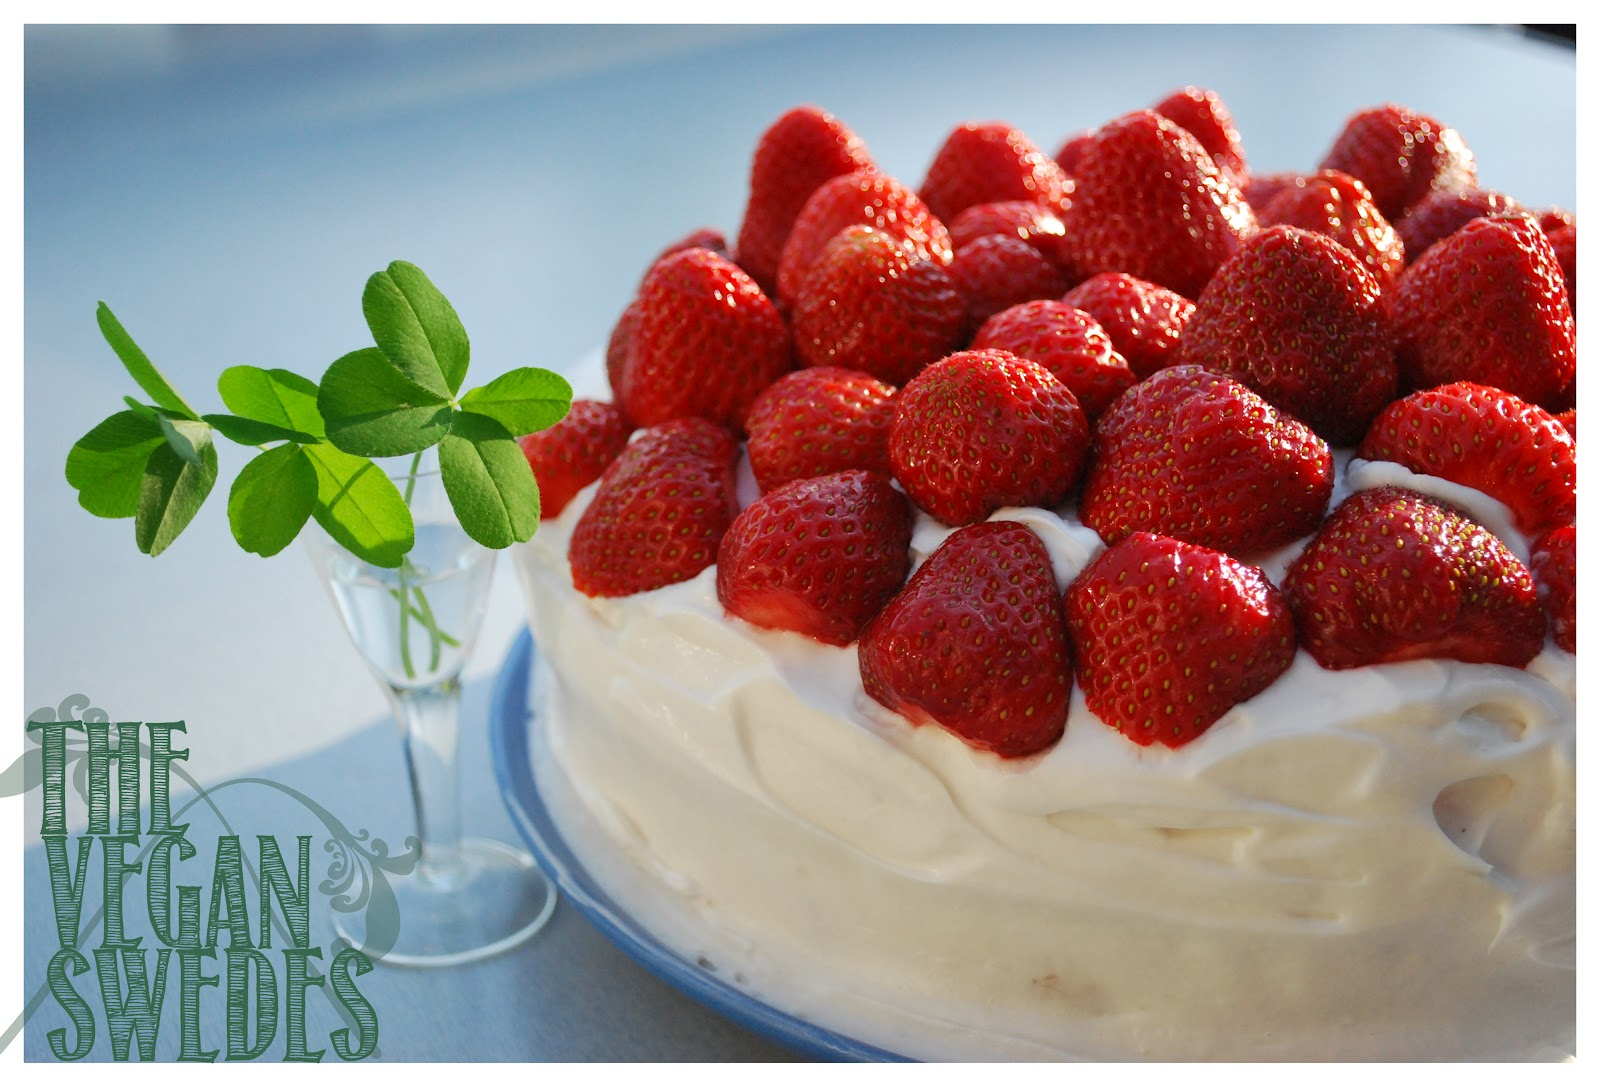 The Vegan Swedes: Midsummers! Strawberry Cream Cake